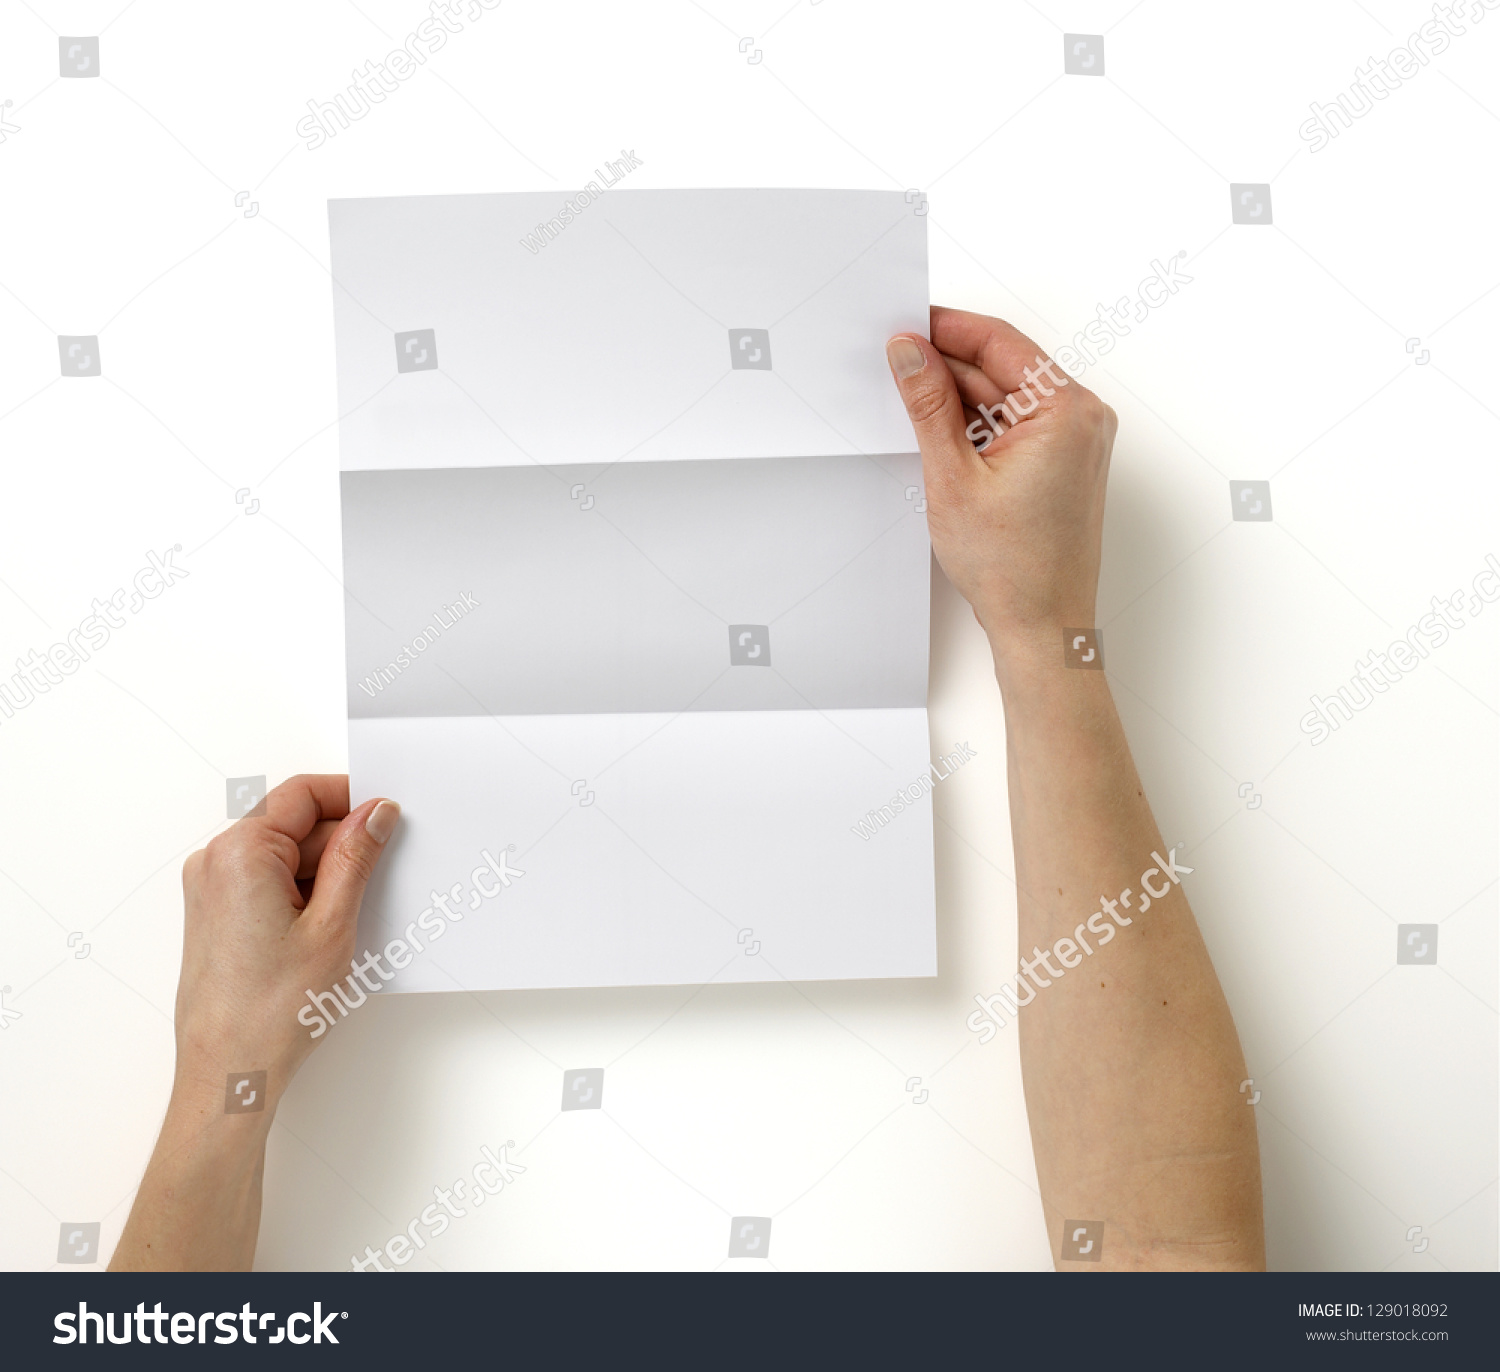 Pair Hands Holding Folded Blank A4 Stock Photo 129018092 ...